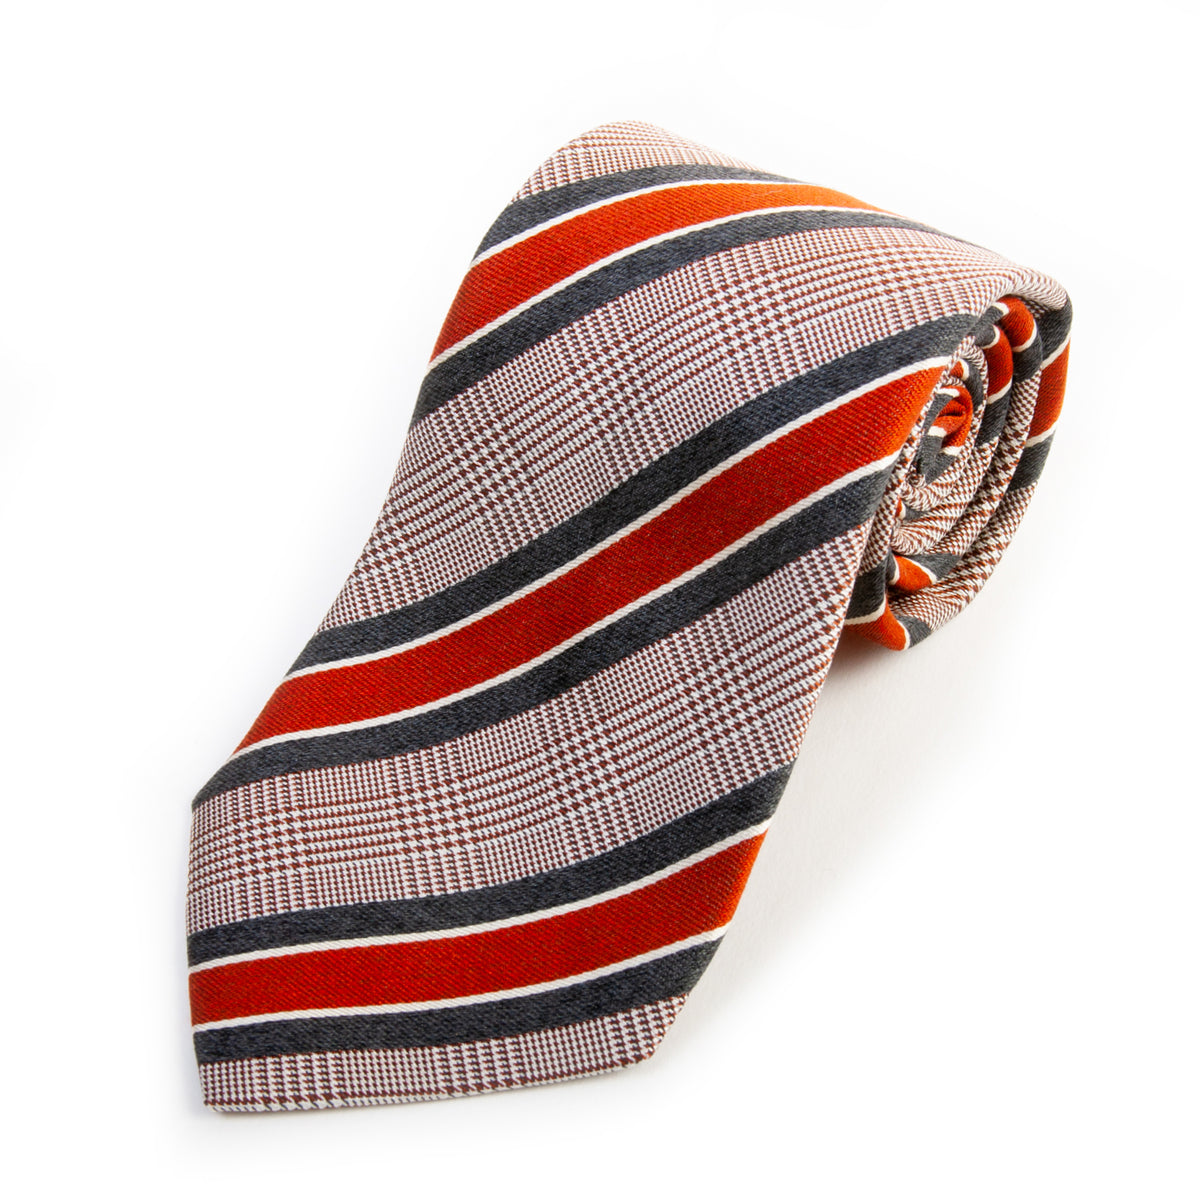 Holt Renfrew Made in Italy Brown Repp Silk Tie for Luxmrkt.com Menswear Consignment Edmonton